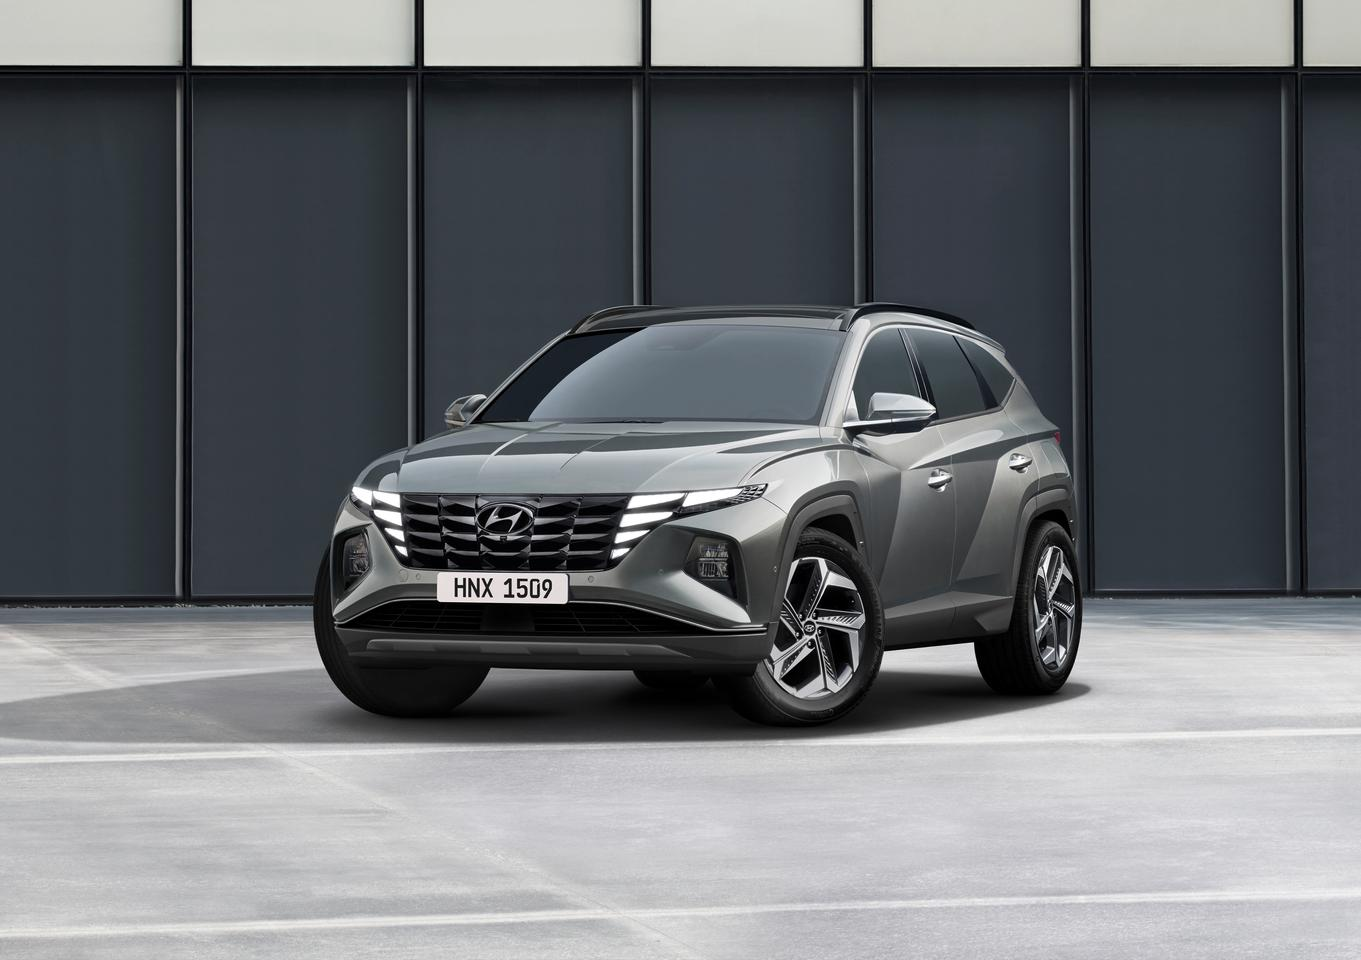 Hyundai gives the new Tucson a dynamic new grille and lighting design